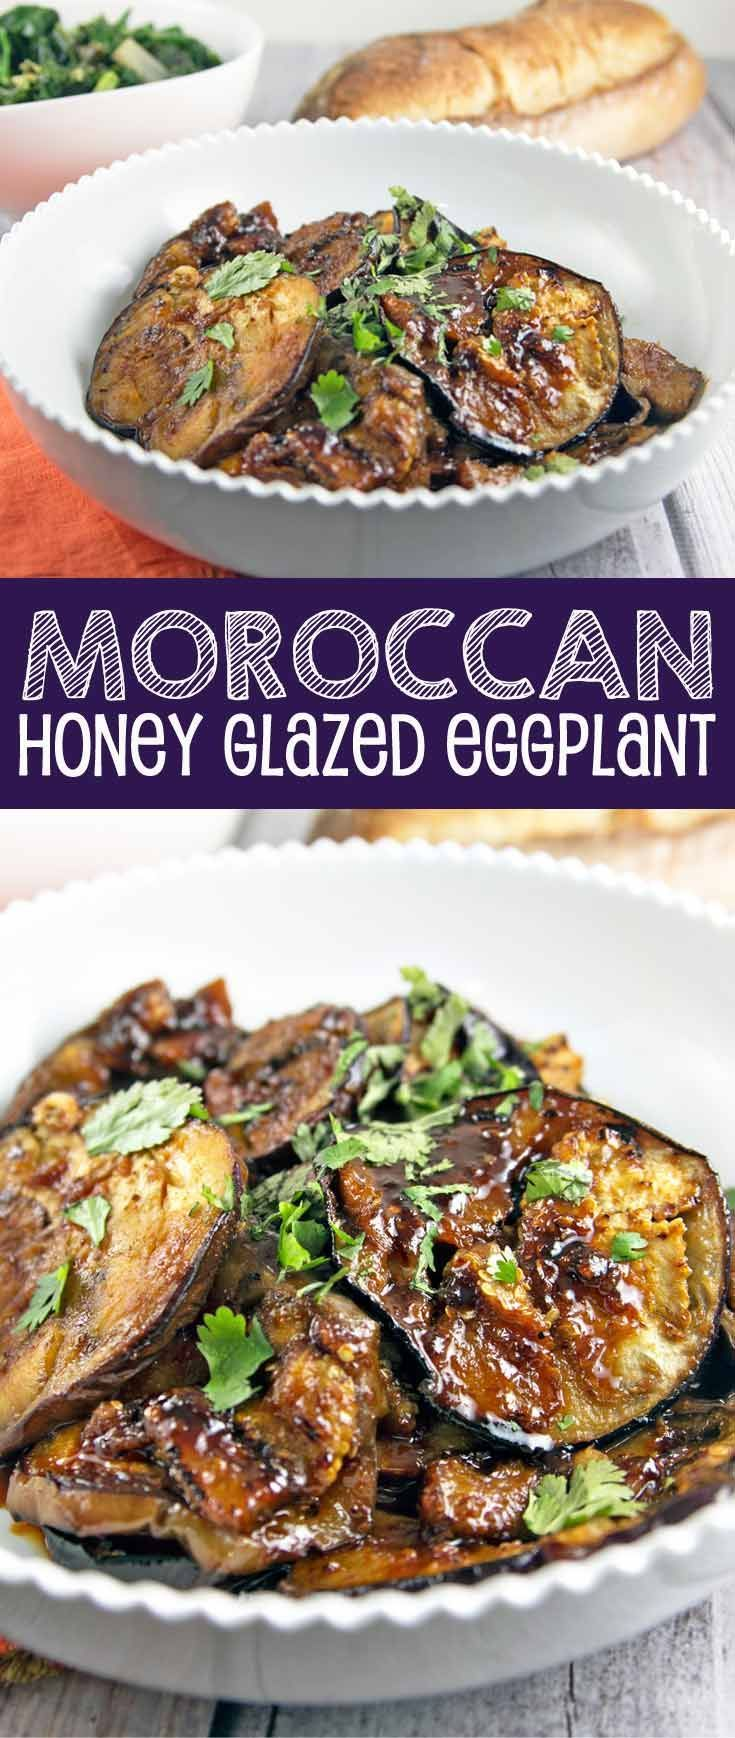 Moroccan Honey Glazed Eggplant: meltingly soft eggplant, glazed in a sweet and spicy honey and harissa sauce. Vegan and gluten free! {Bunsen Burner Bakery} via @bnsnbrnrbakery